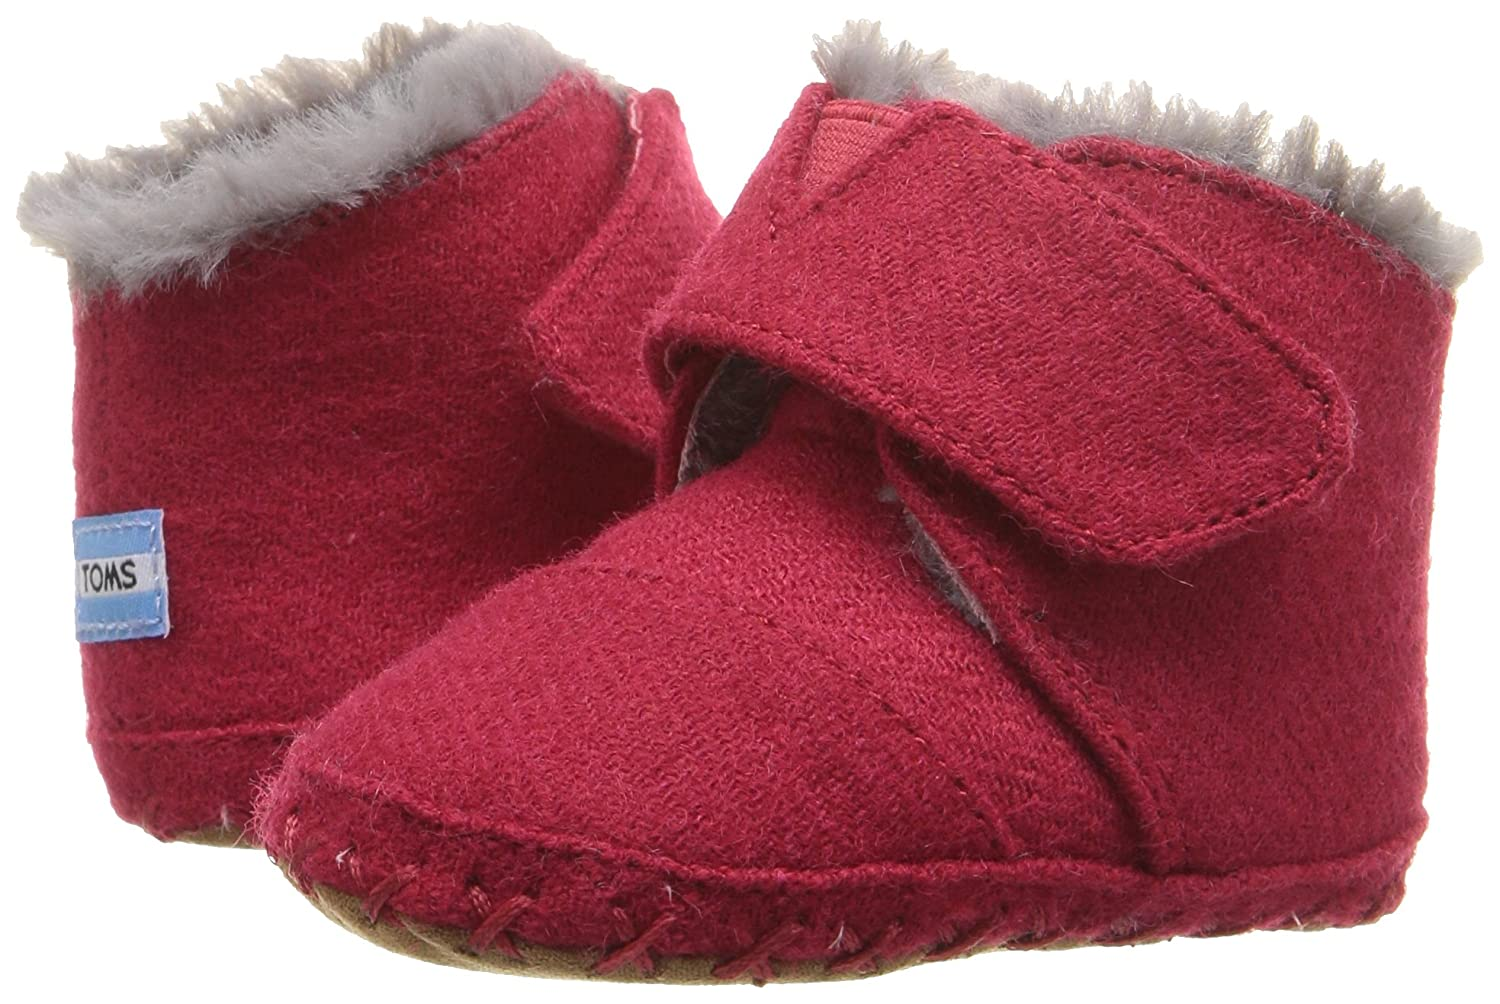 da8a0b40739 Amazon.com  TOMS Kids  Cuna-K  Shoes